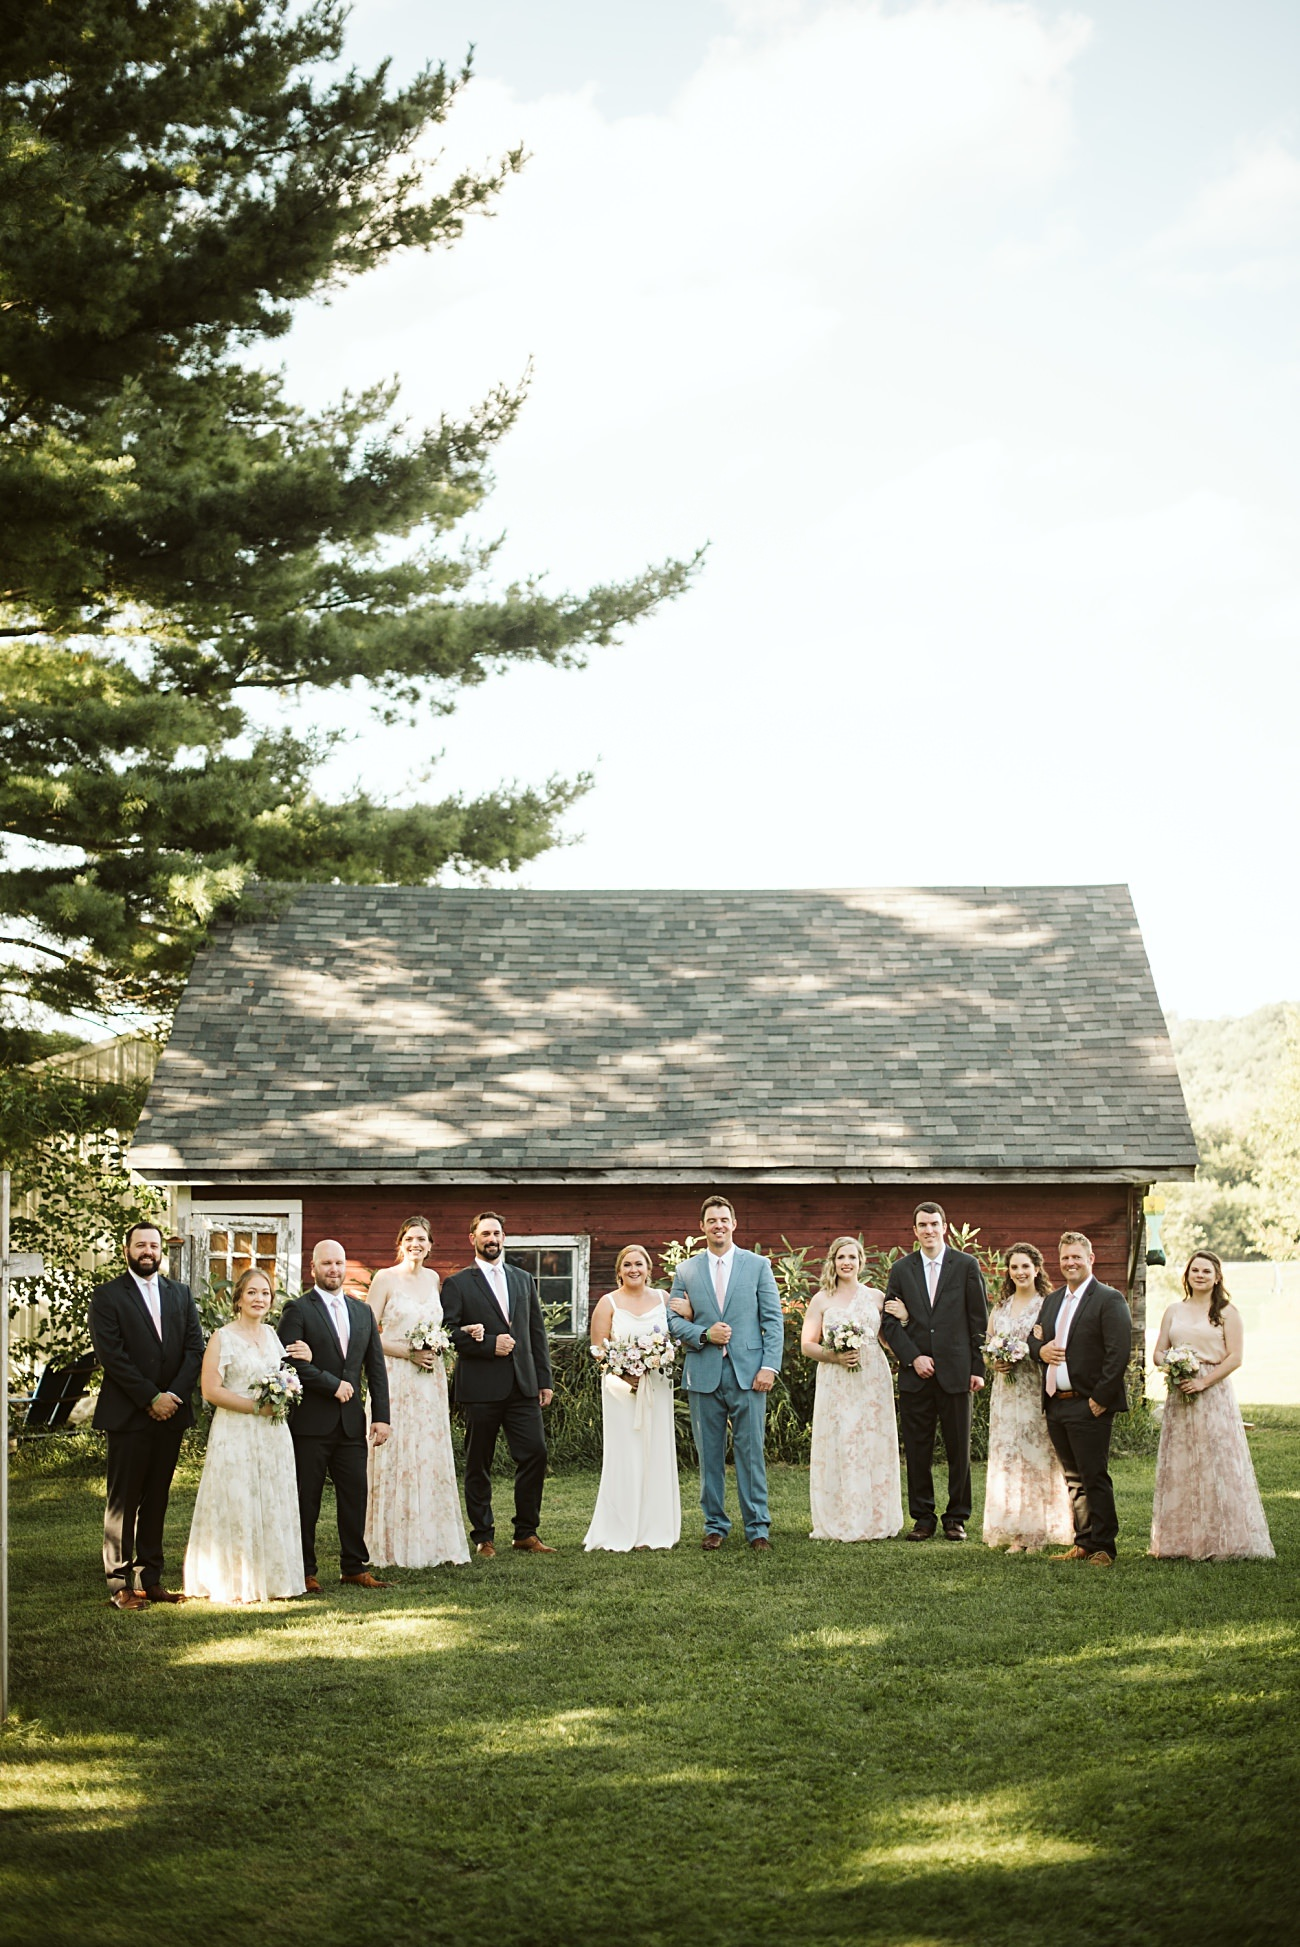 Octagon Barn Wedding near Spring Green Wisconsin, Barn Wedding Inspiration, Wedding Party Inspiration, Floral Bridesmaid Dresses